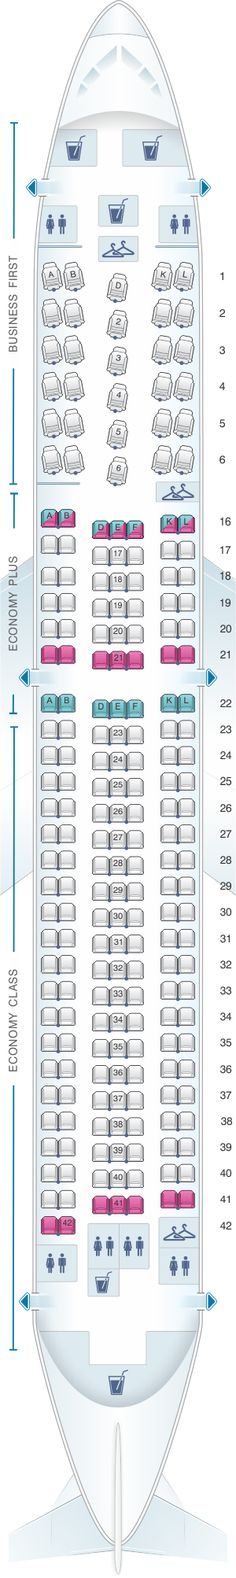 Seat Map United Airlines Boeing B767 300ER – version 2